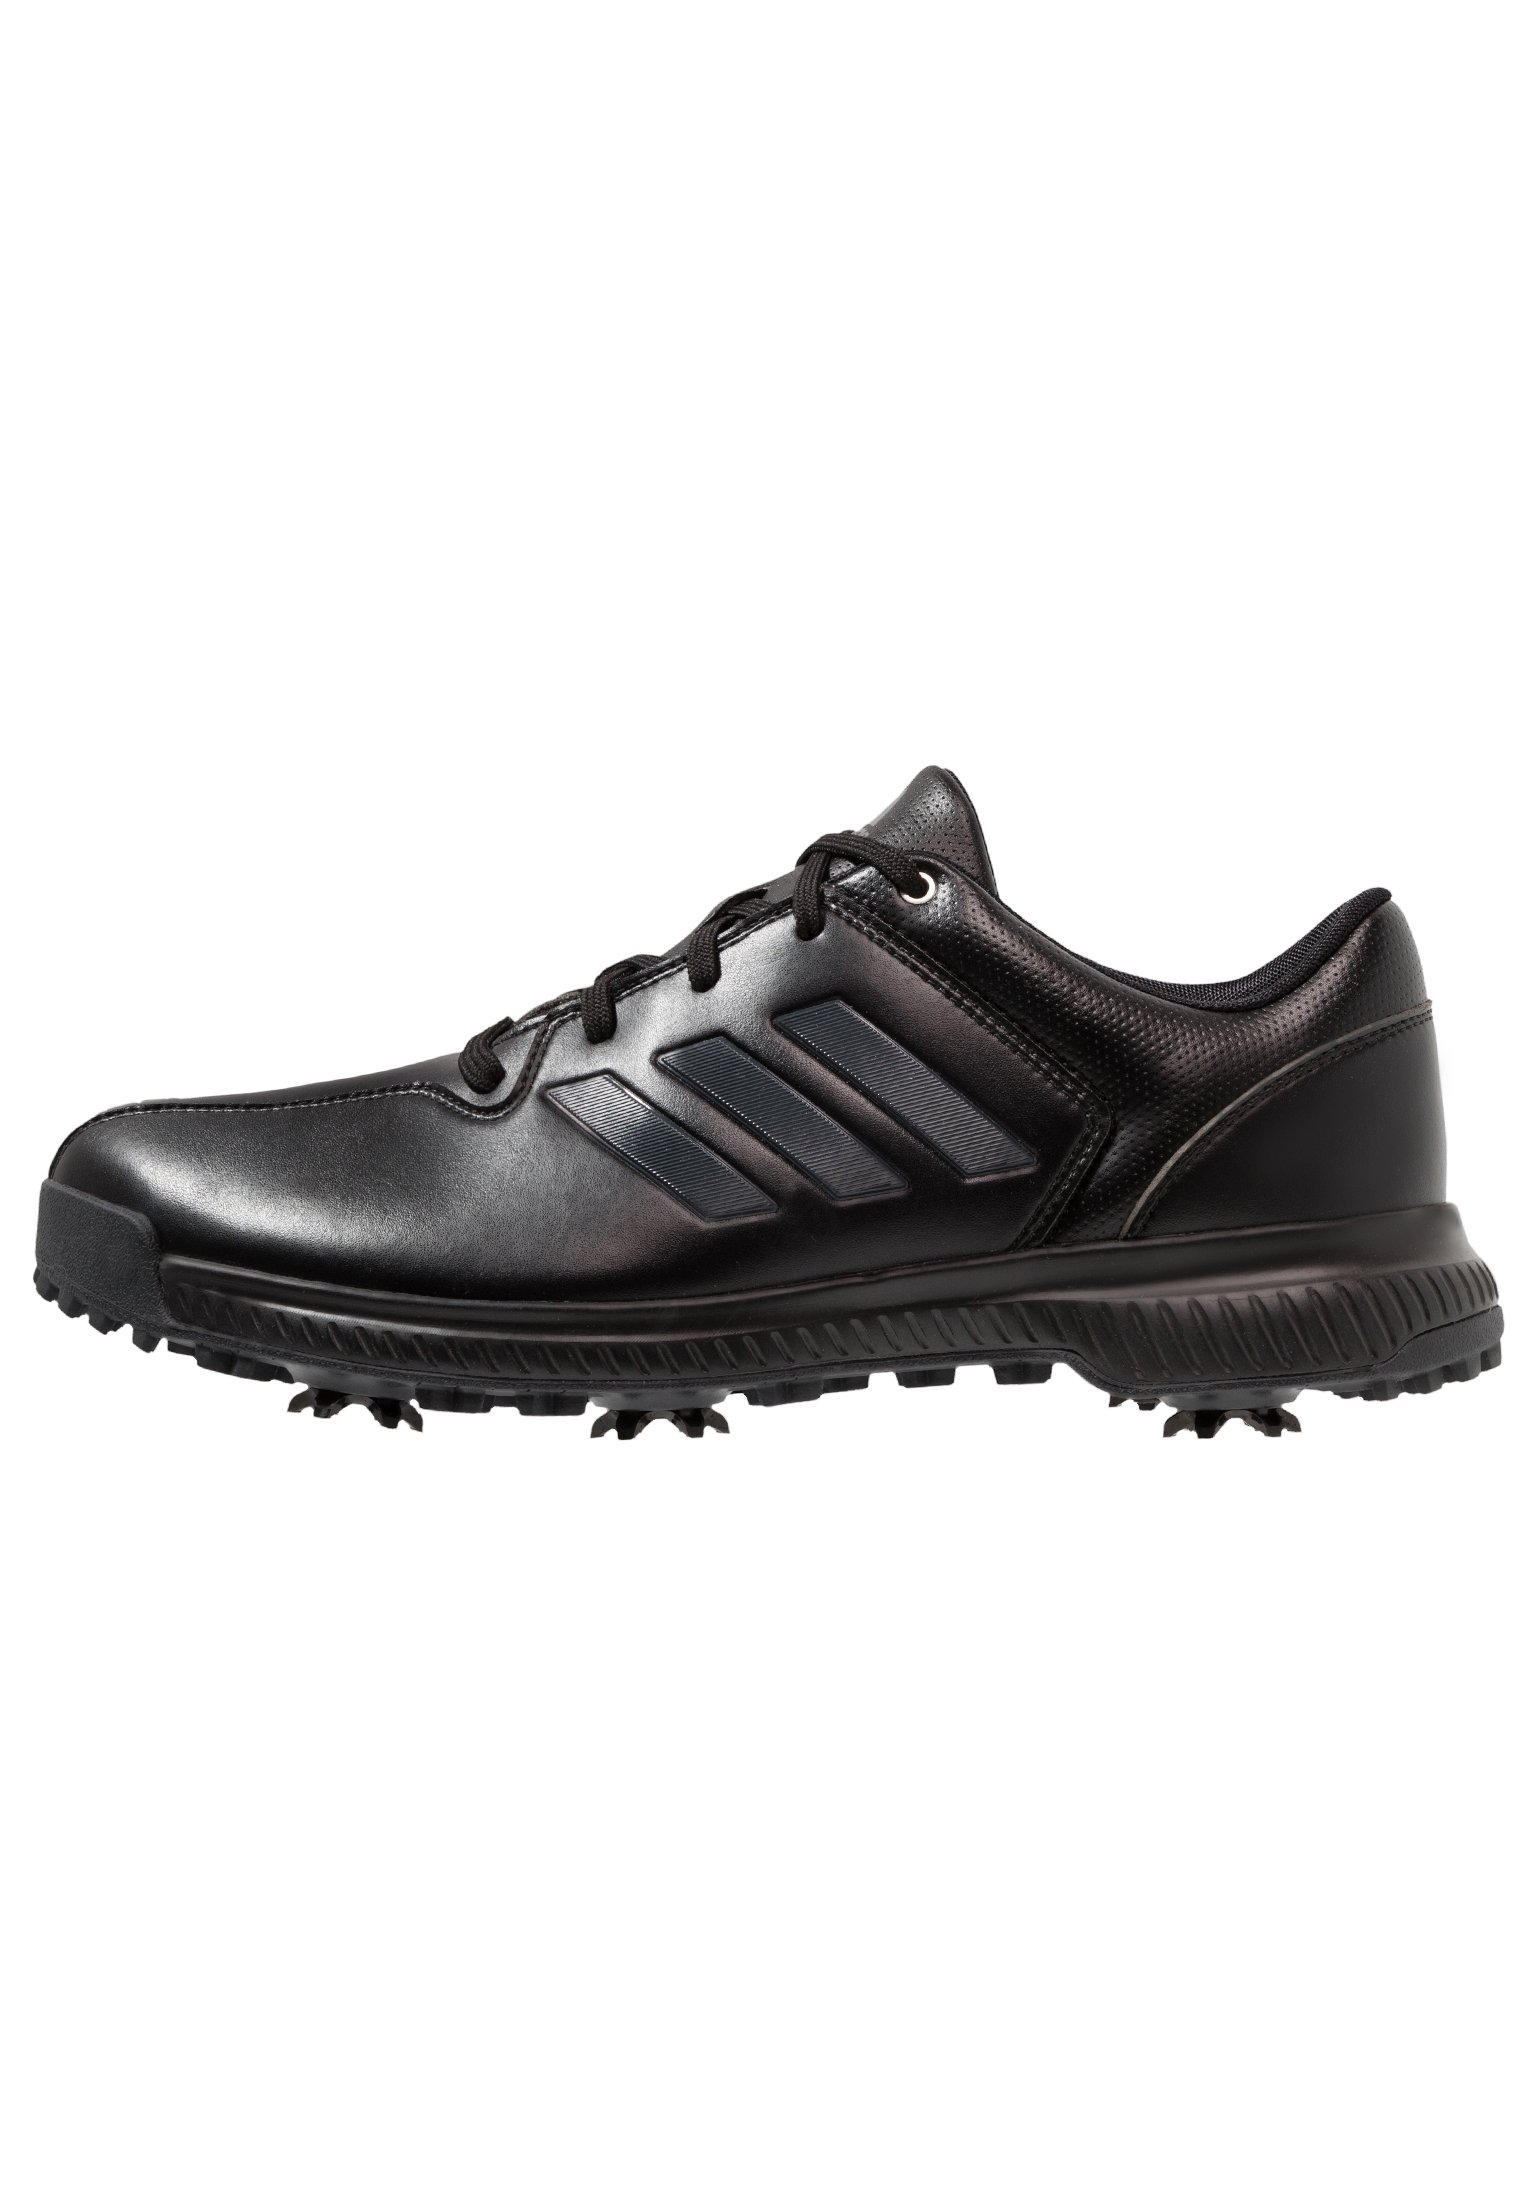 Adidas Golf Cp Traxion - Golfkengät Core Black/carbon/iron Metallic